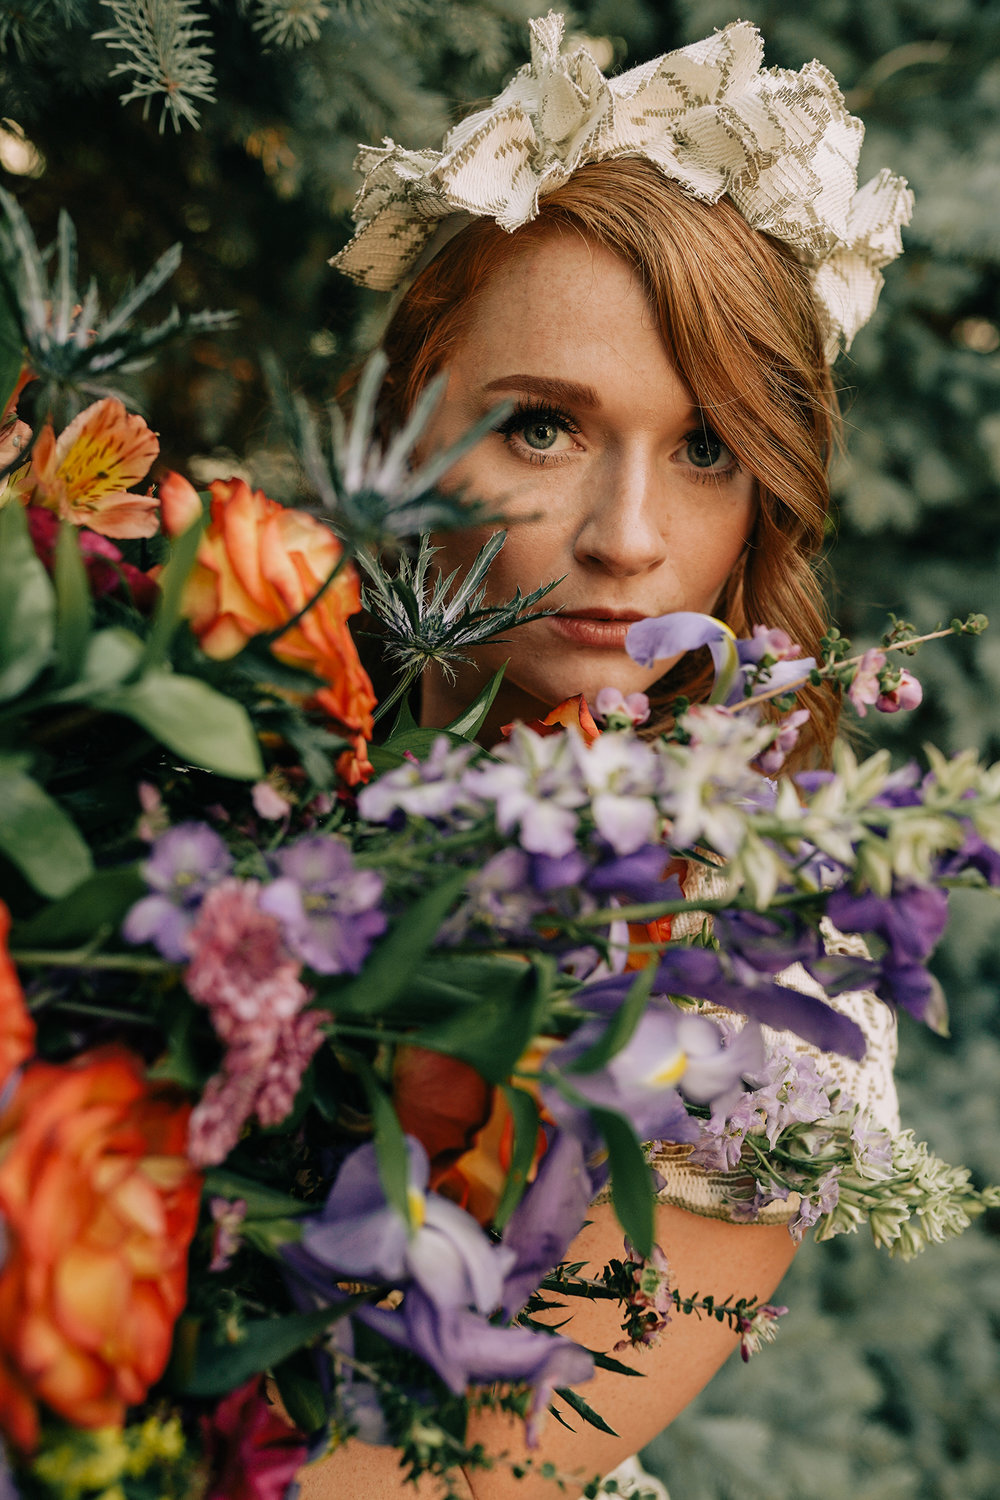 bride-holding-bouquet-close-to-eyes-myrtle-mae-iris-aisle-dame-maiden-lavender-blue-floral-raelyn-ramey-photography.jpg